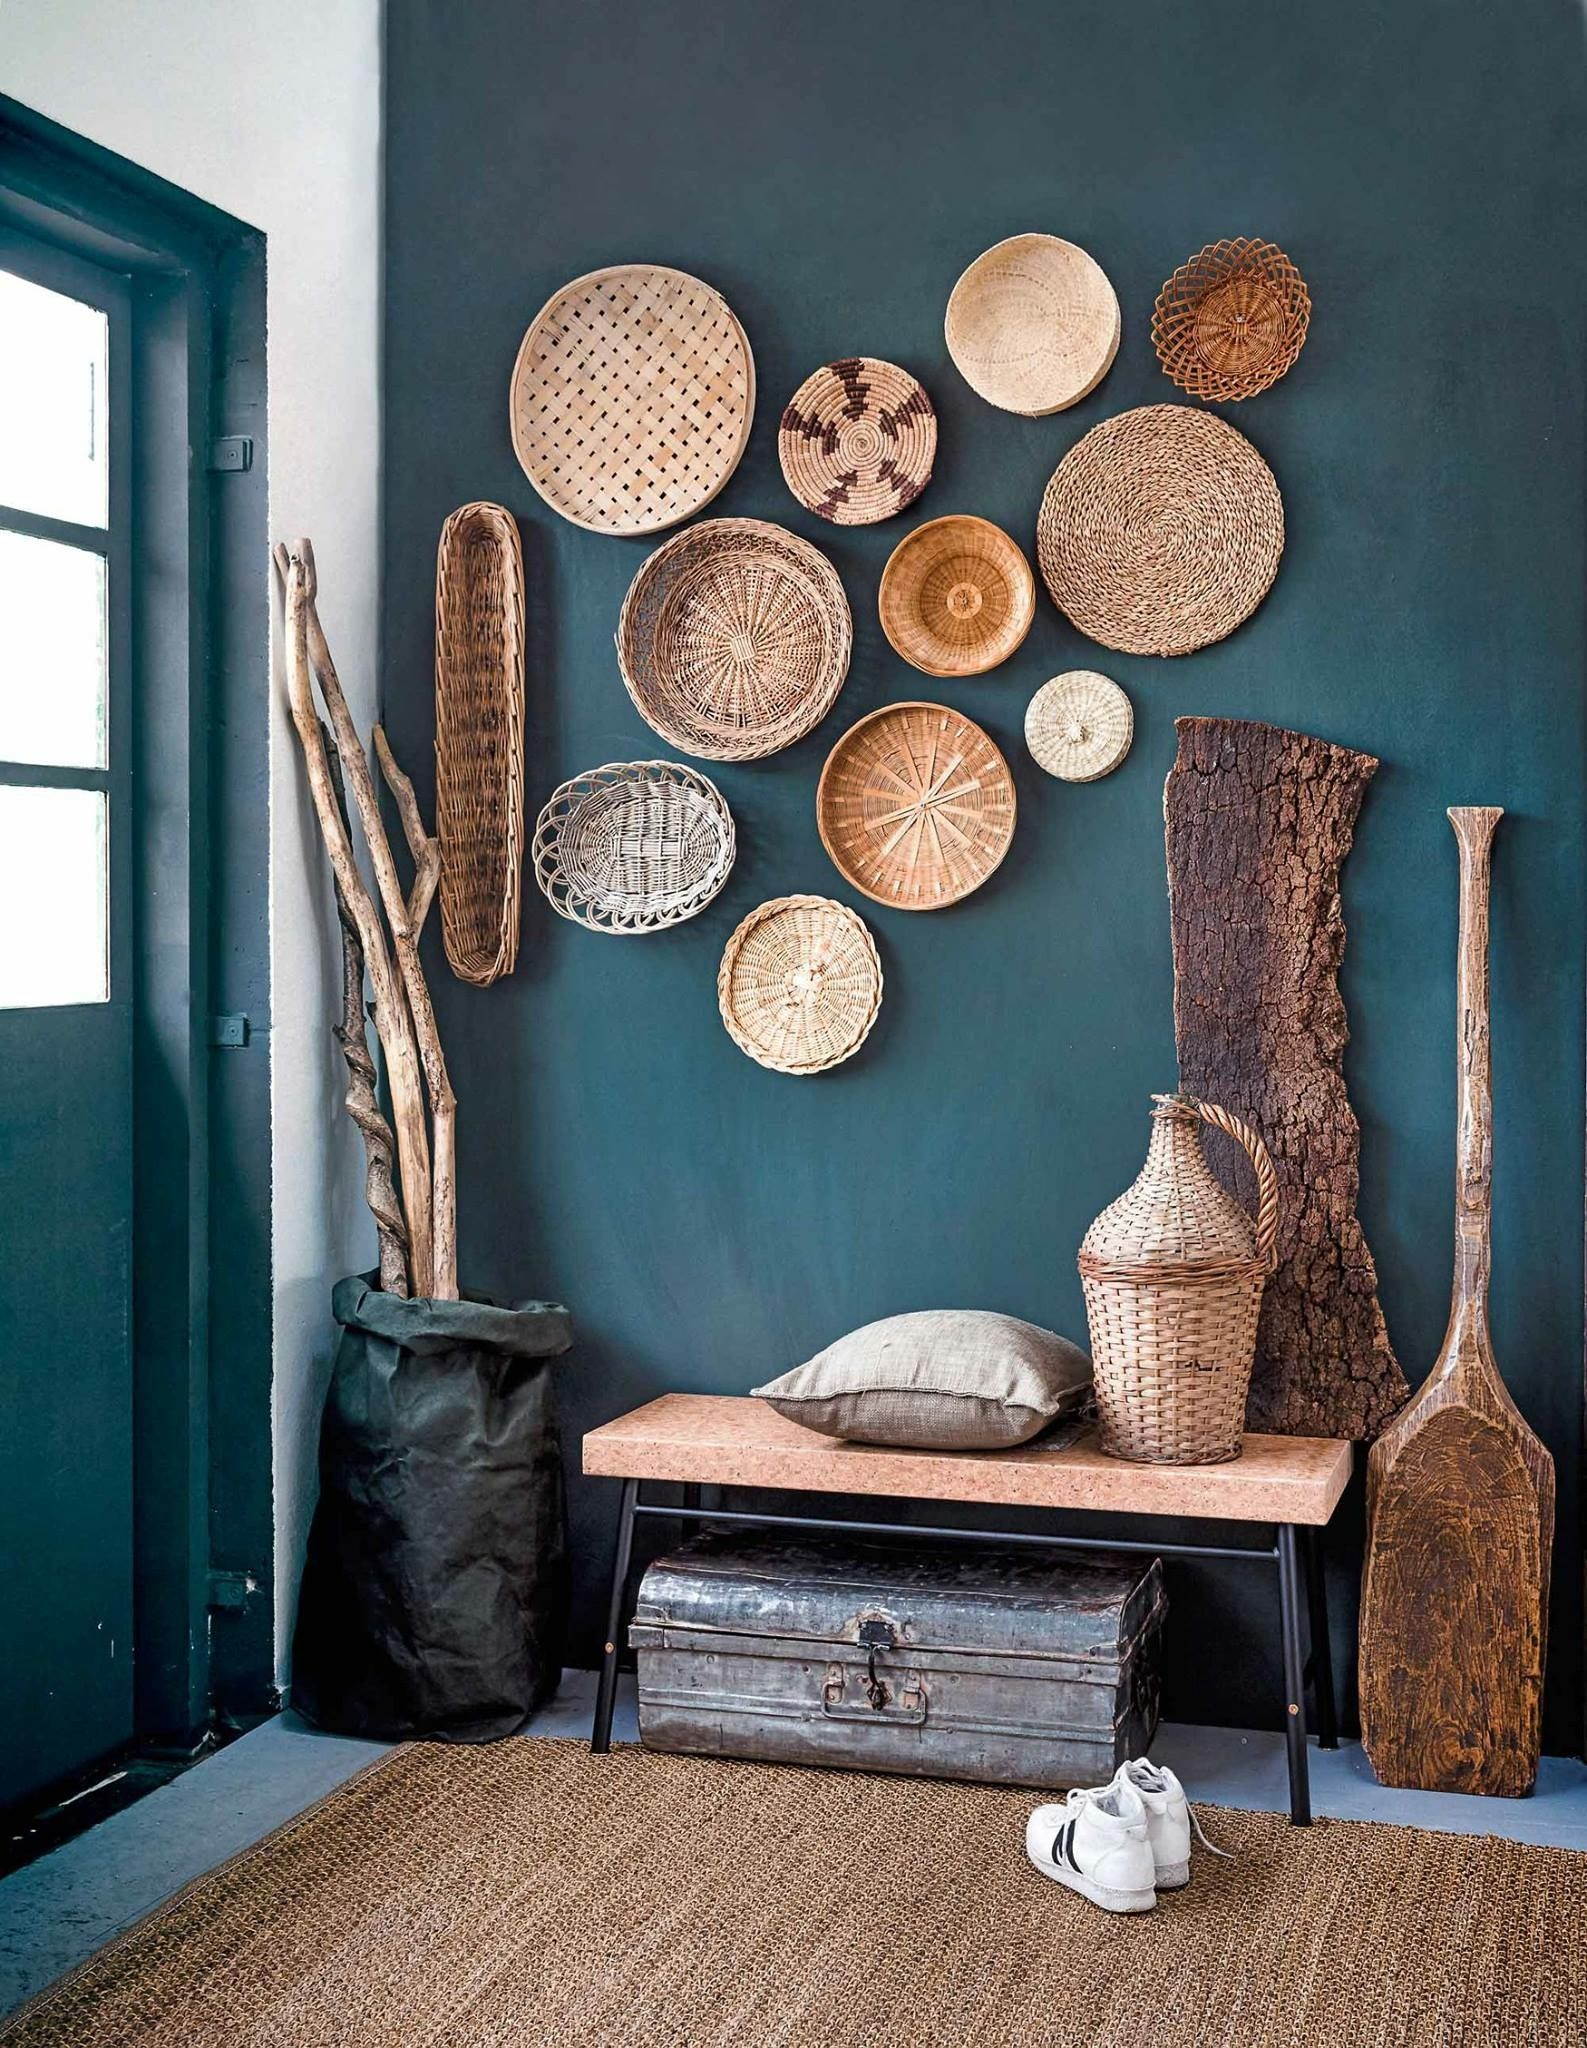 Afrikanische Wandfarben Baskets On Teal Wall, Entryway With Lots Of Textures